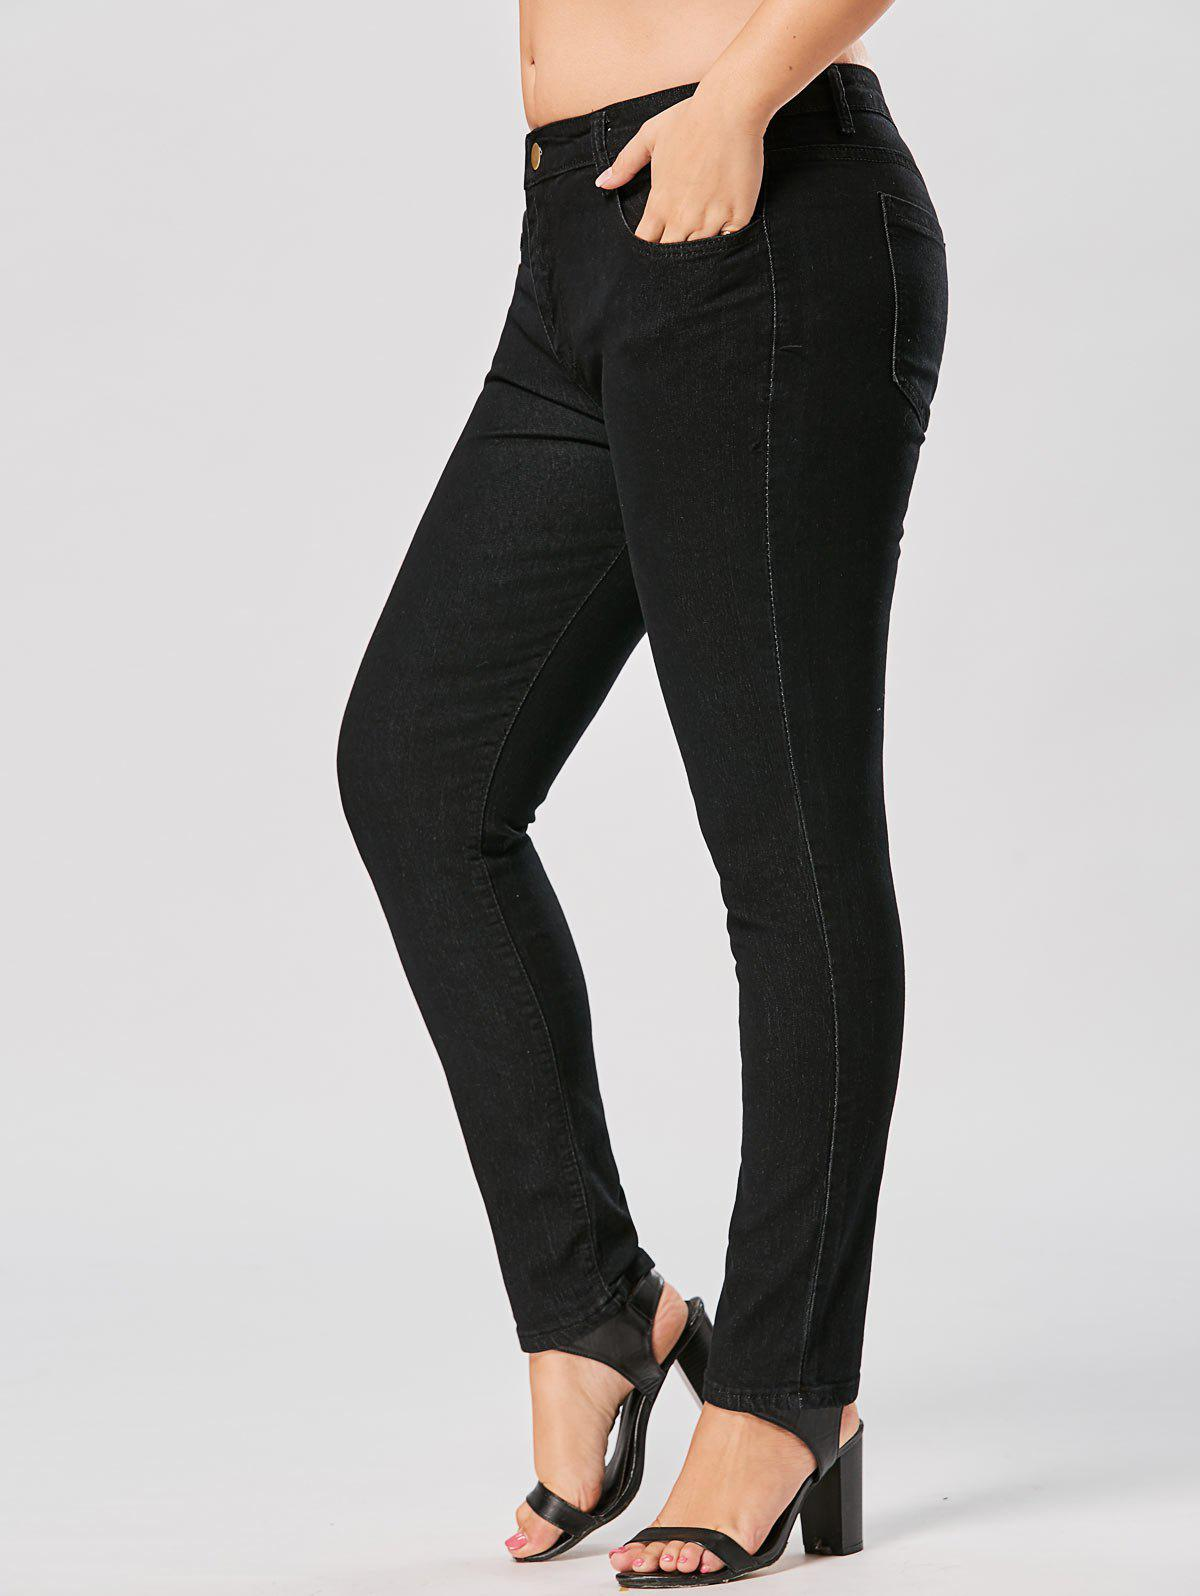 Plus Size Stretch Skinny JeansWOMEN<br><br>Size: 3XL; Color: BLACK; Style: Casual; Length: Ninth; Material: Jeans; Fabric Type: Denim; Fit Type: Skinny; Waist Type: Mid; Closure Type: Zipper Fly; Pattern Type: Solid; Embellishment: Pockets; Pant Style: Pencil Pants; Elasticity: Elastic; Weight: 0.6400kg; Package Contents: 1 x Jeans;